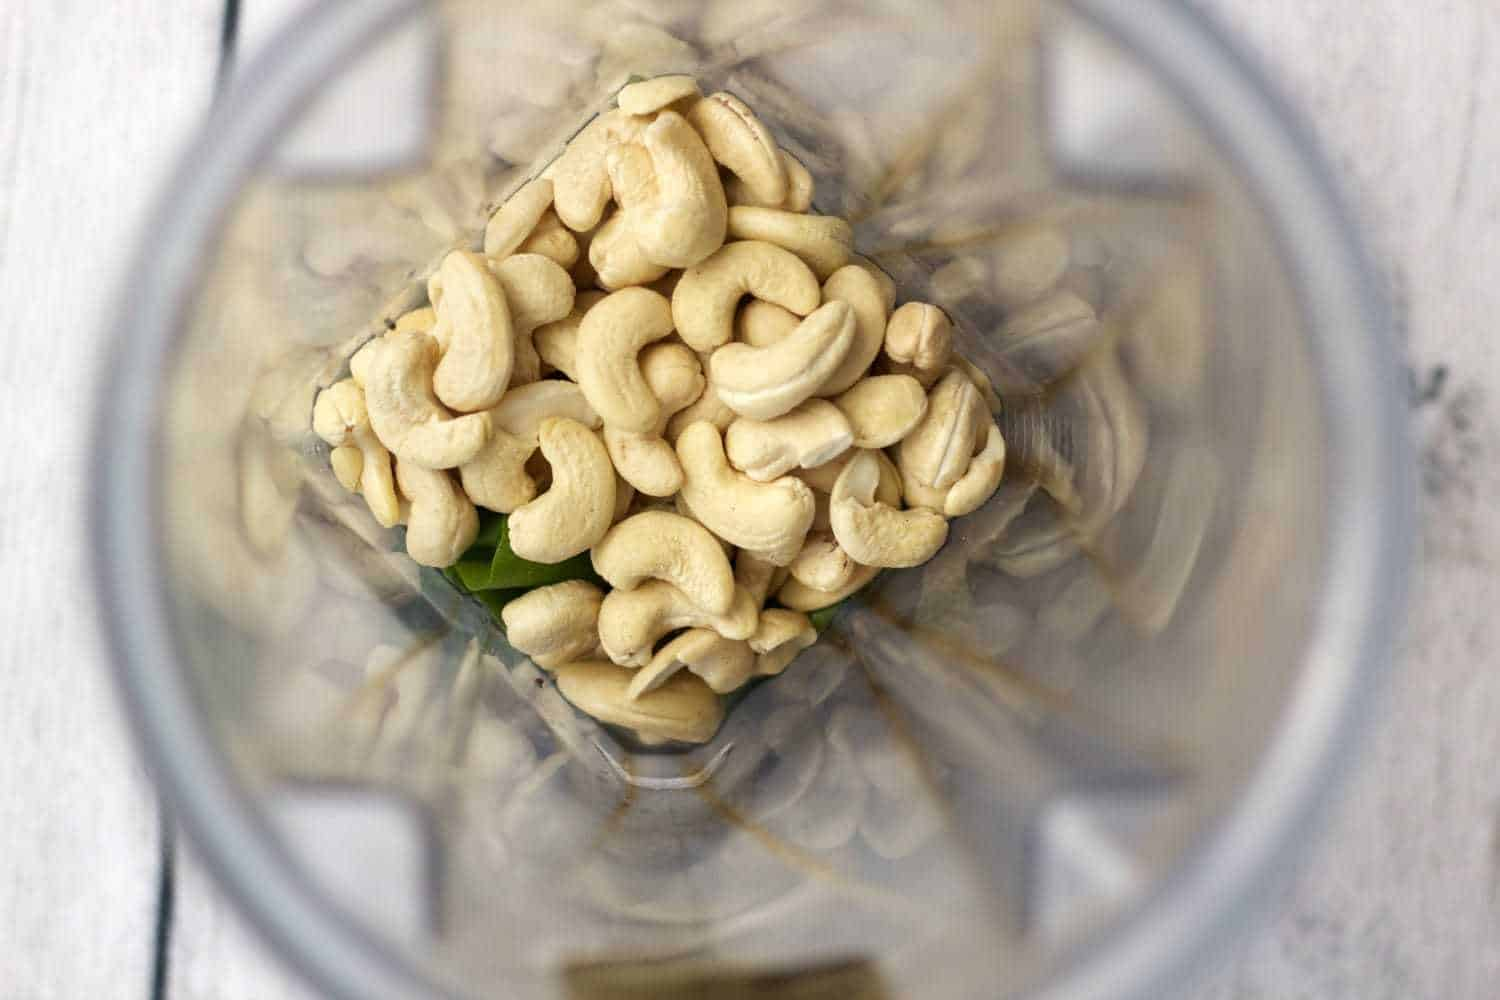 A blender jug with ingredients ready to blend. Cashew nuts can be seen at the top of the jug.